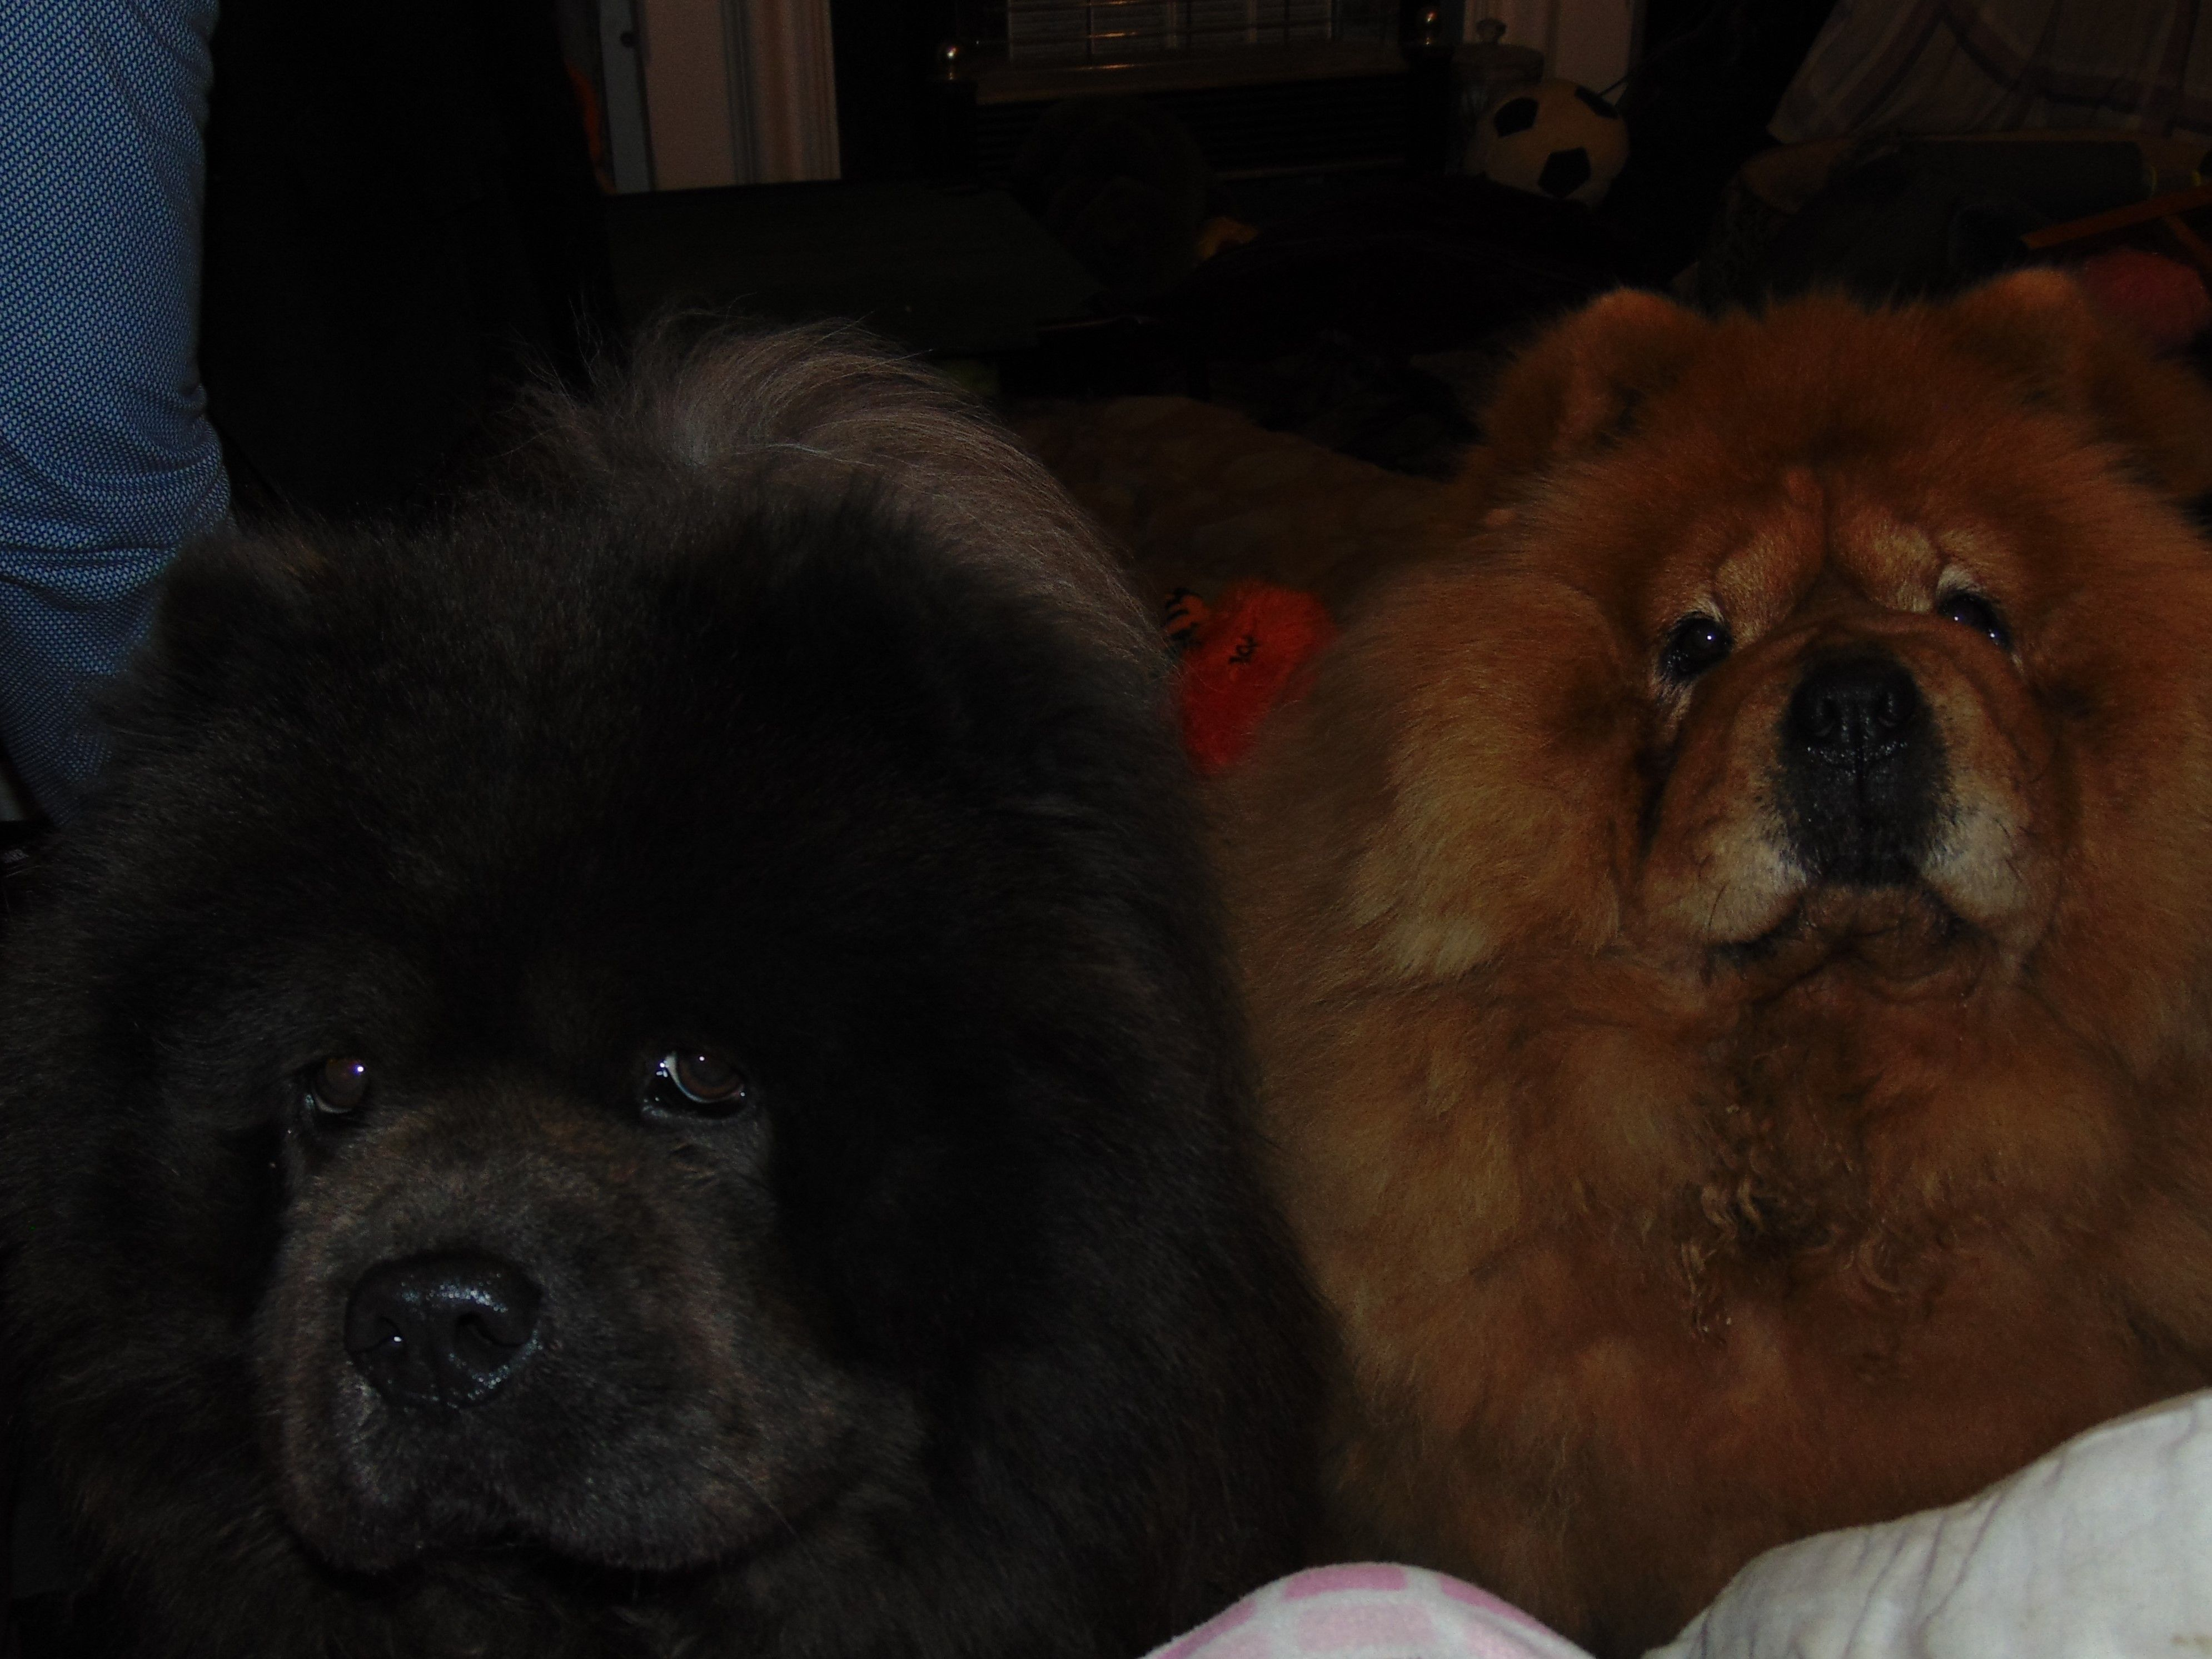 Vasili Blue Chow Chow And Mishka Cinnamon Chow Chow Looking